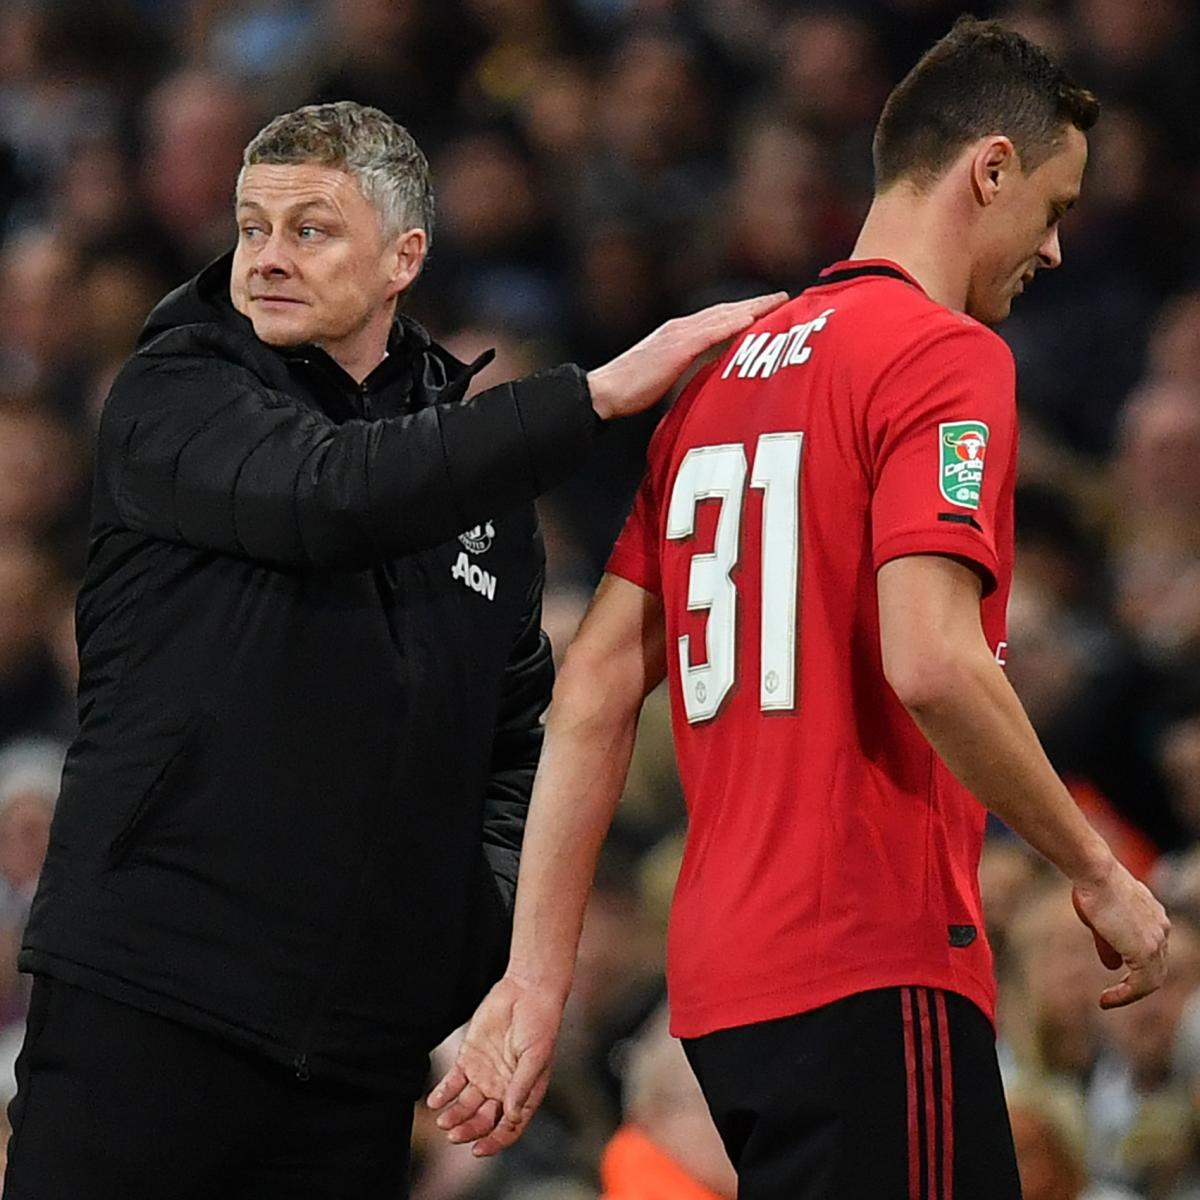 Nemanja Matic on Ole Gunnar Solskjaer: 'Every Day He Is Improving' at Man United